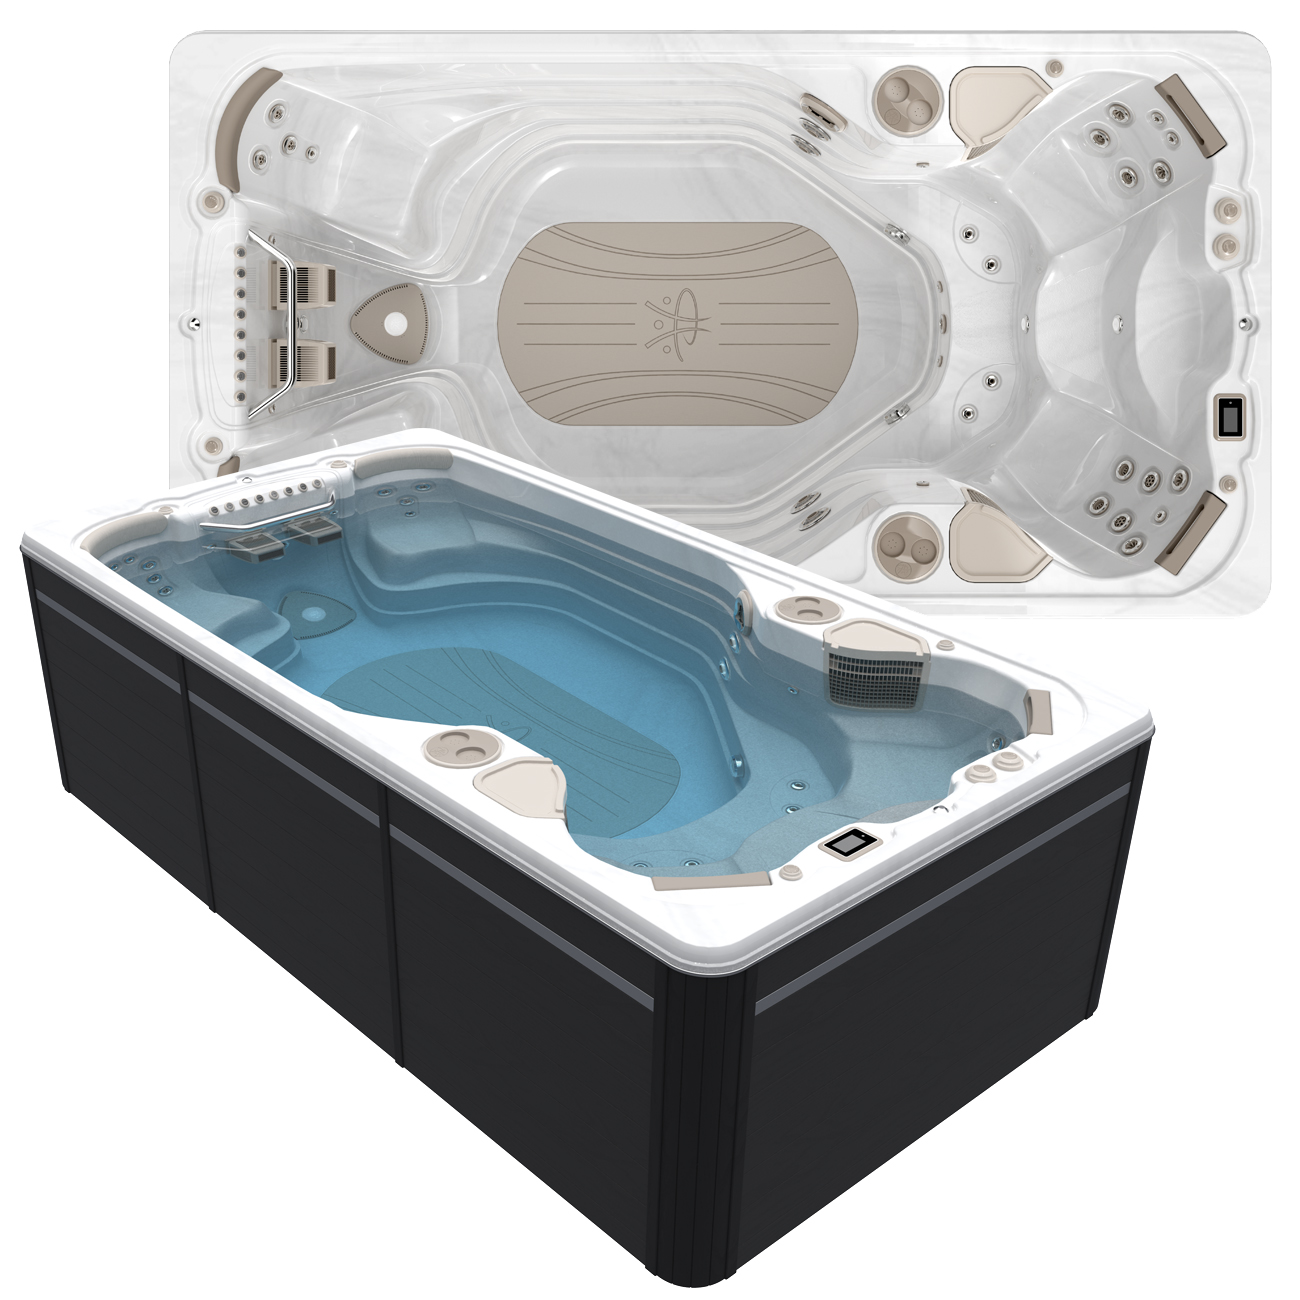 Hydropool AquaTrainer 14AX Swim Spa